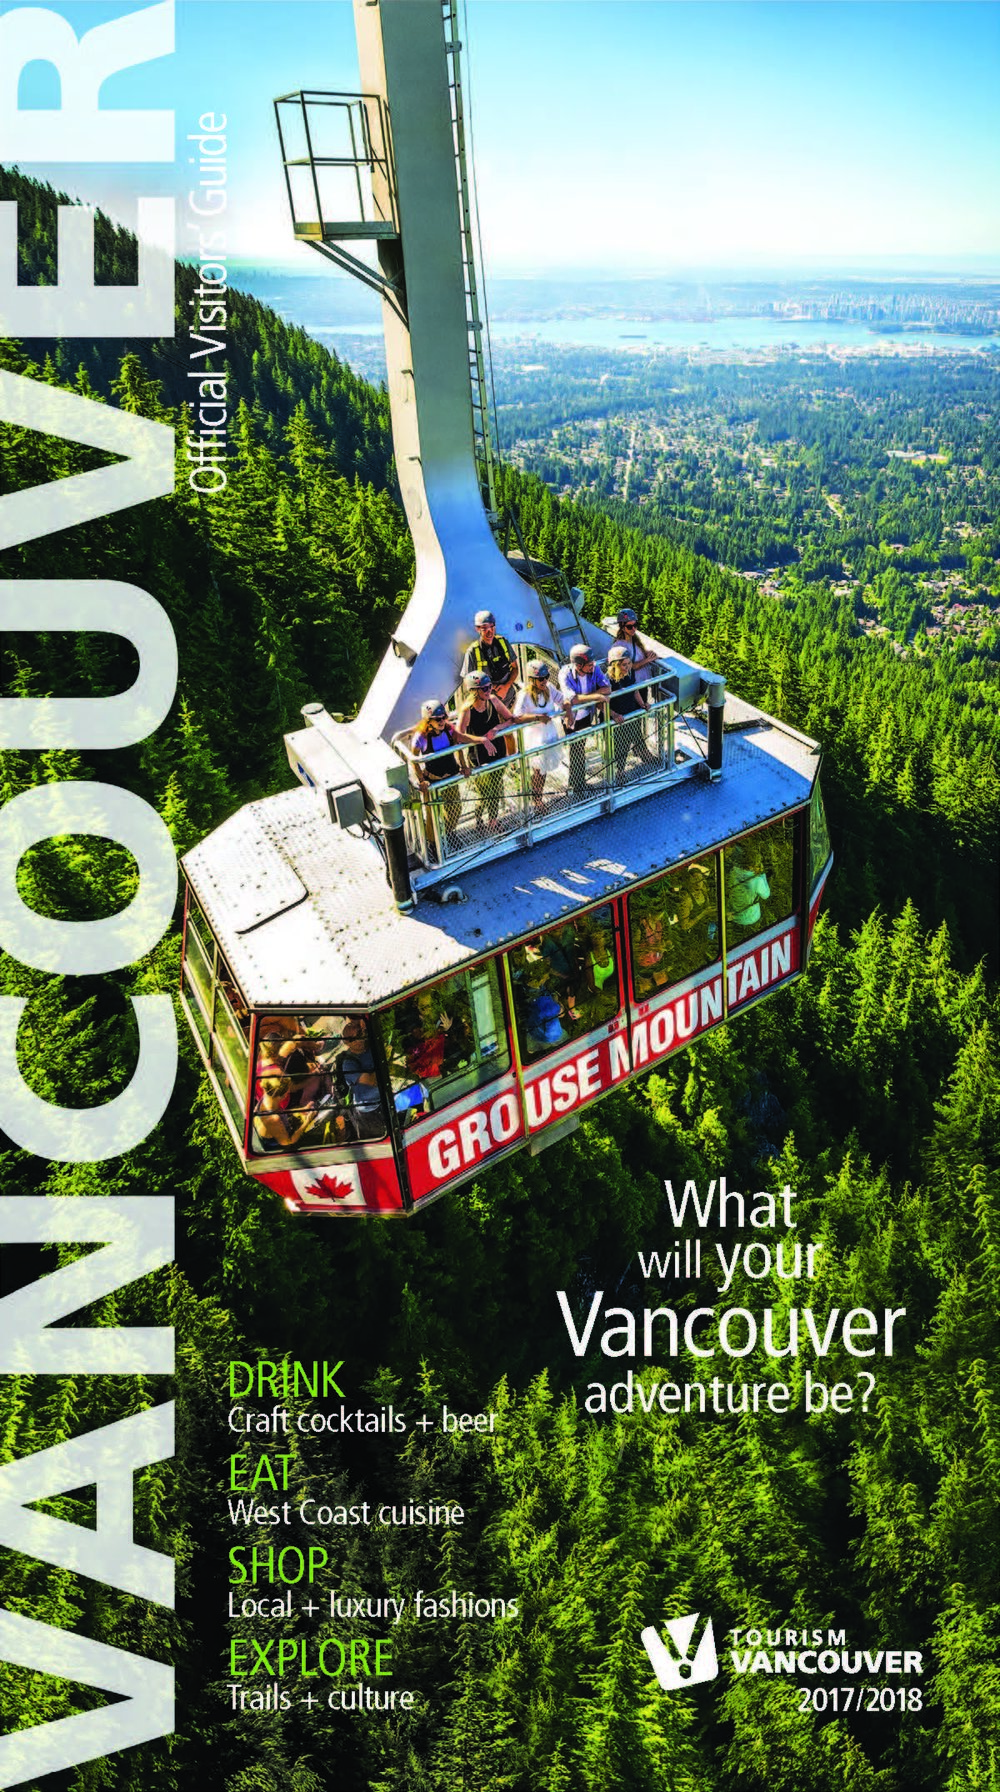 2017/18 Tourism Vancouver  Official Visitors' Guide